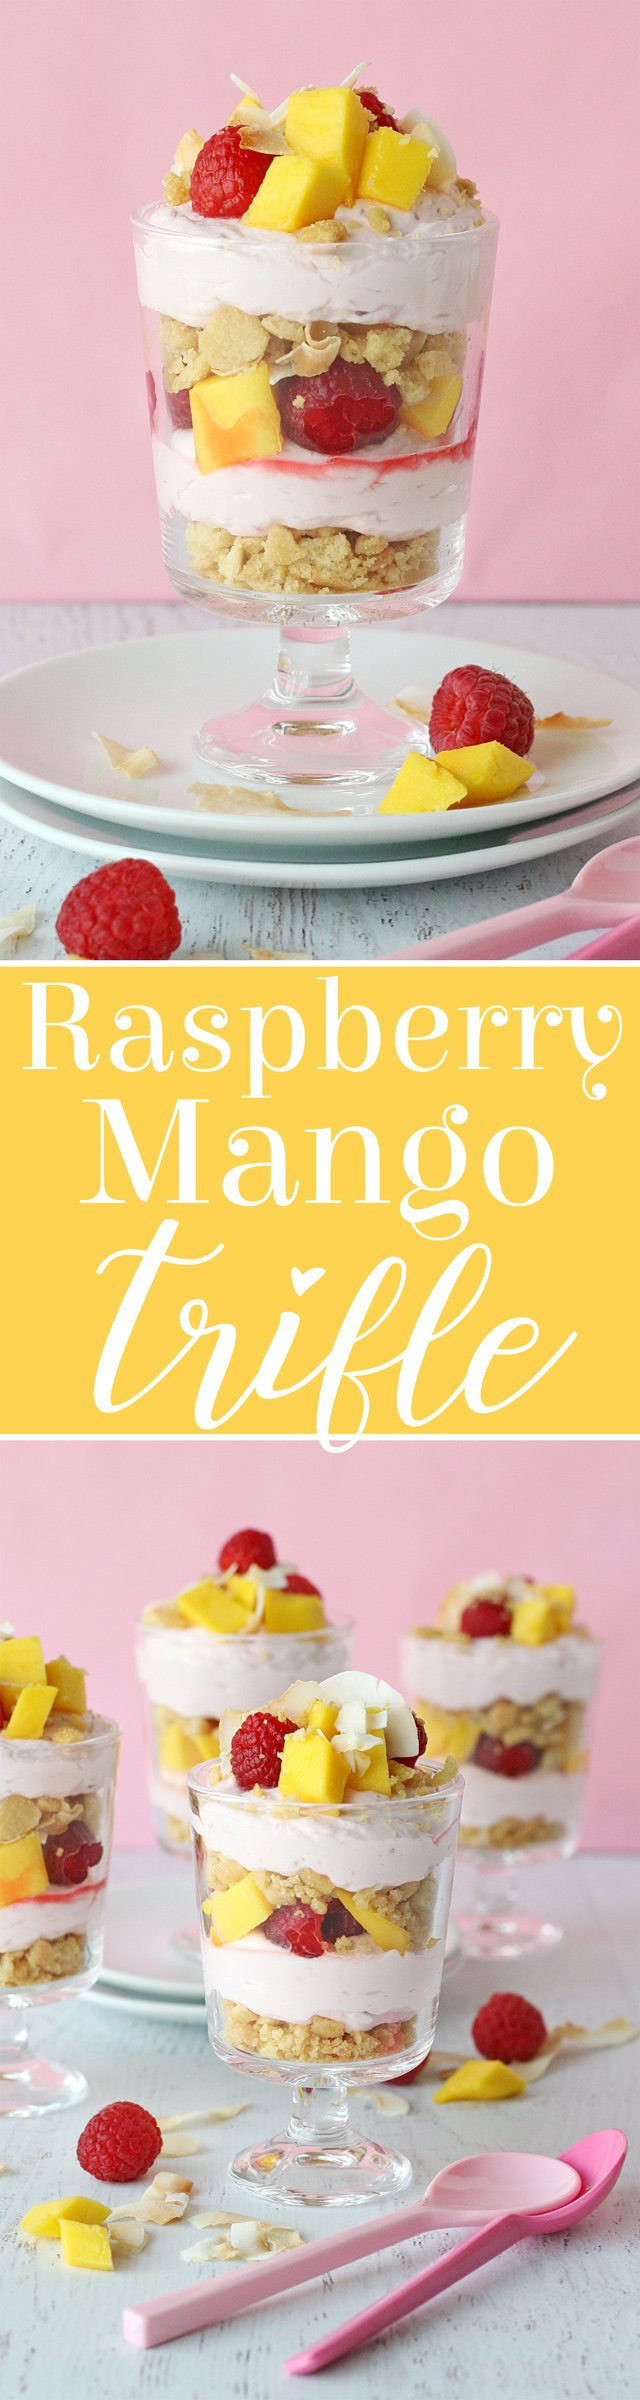 Raspberry Mango Trifle